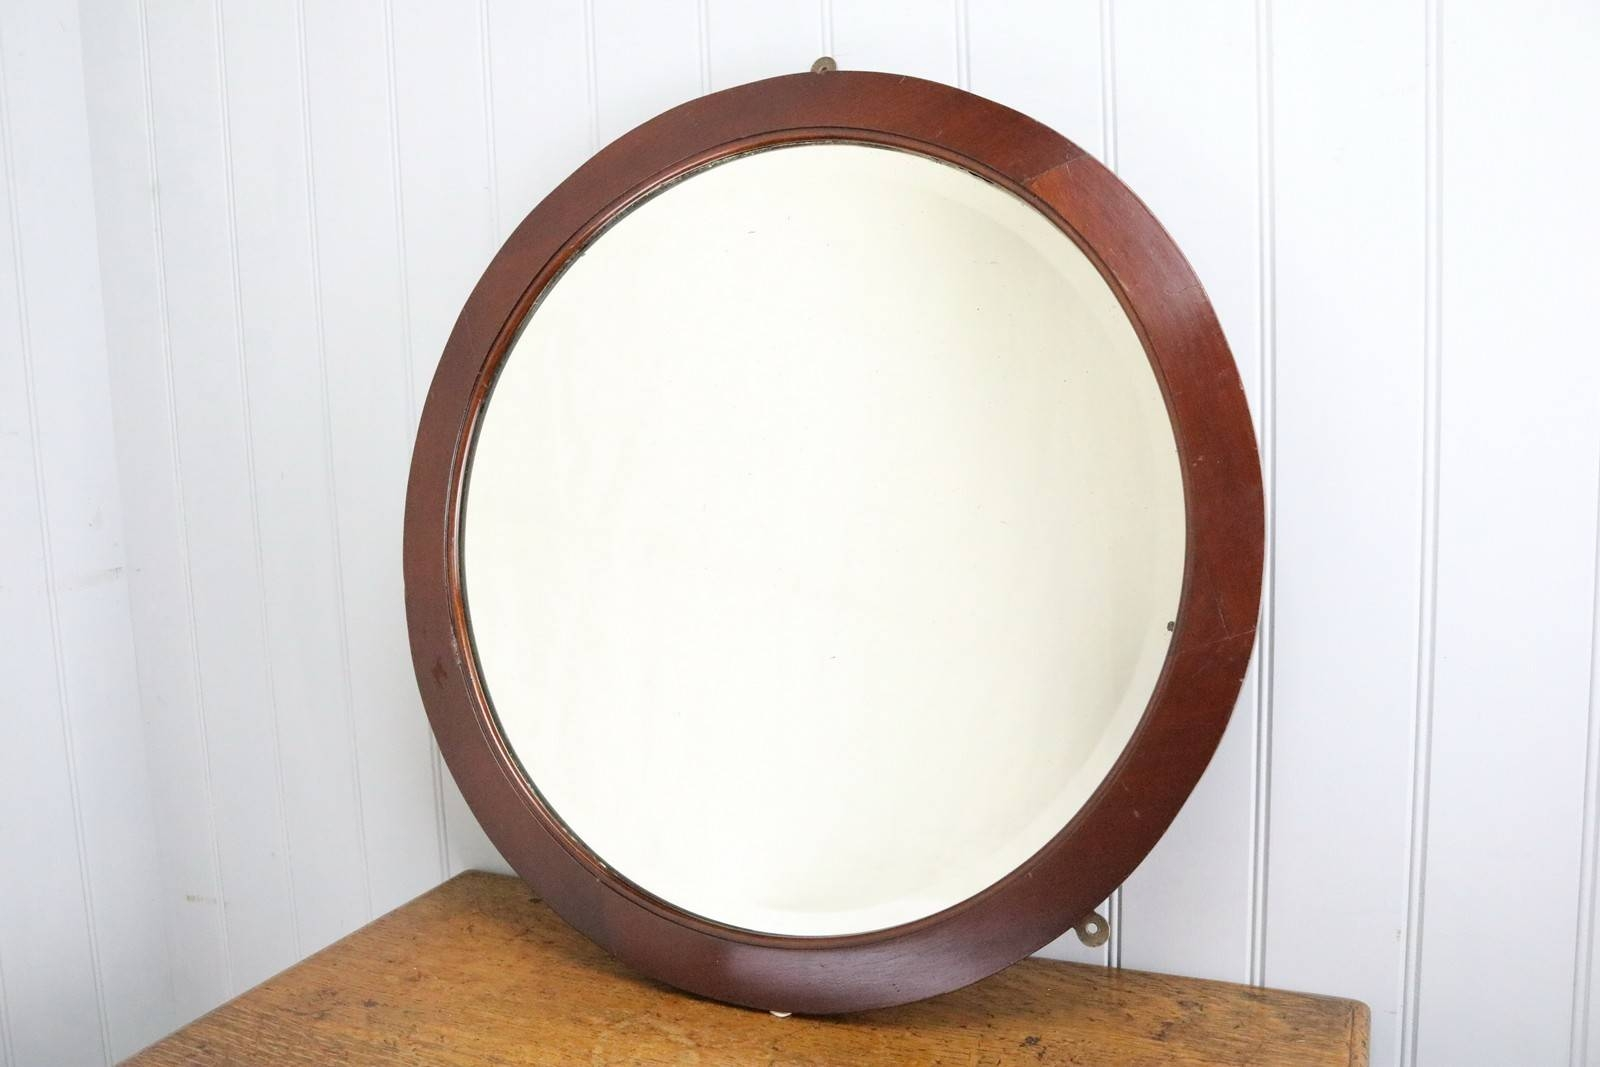 Circular Oak Framed Wall Mirror Circa 1930 - The Hoarde with regard to Oak Framed Wall Mirrors (Image 2 of 25)